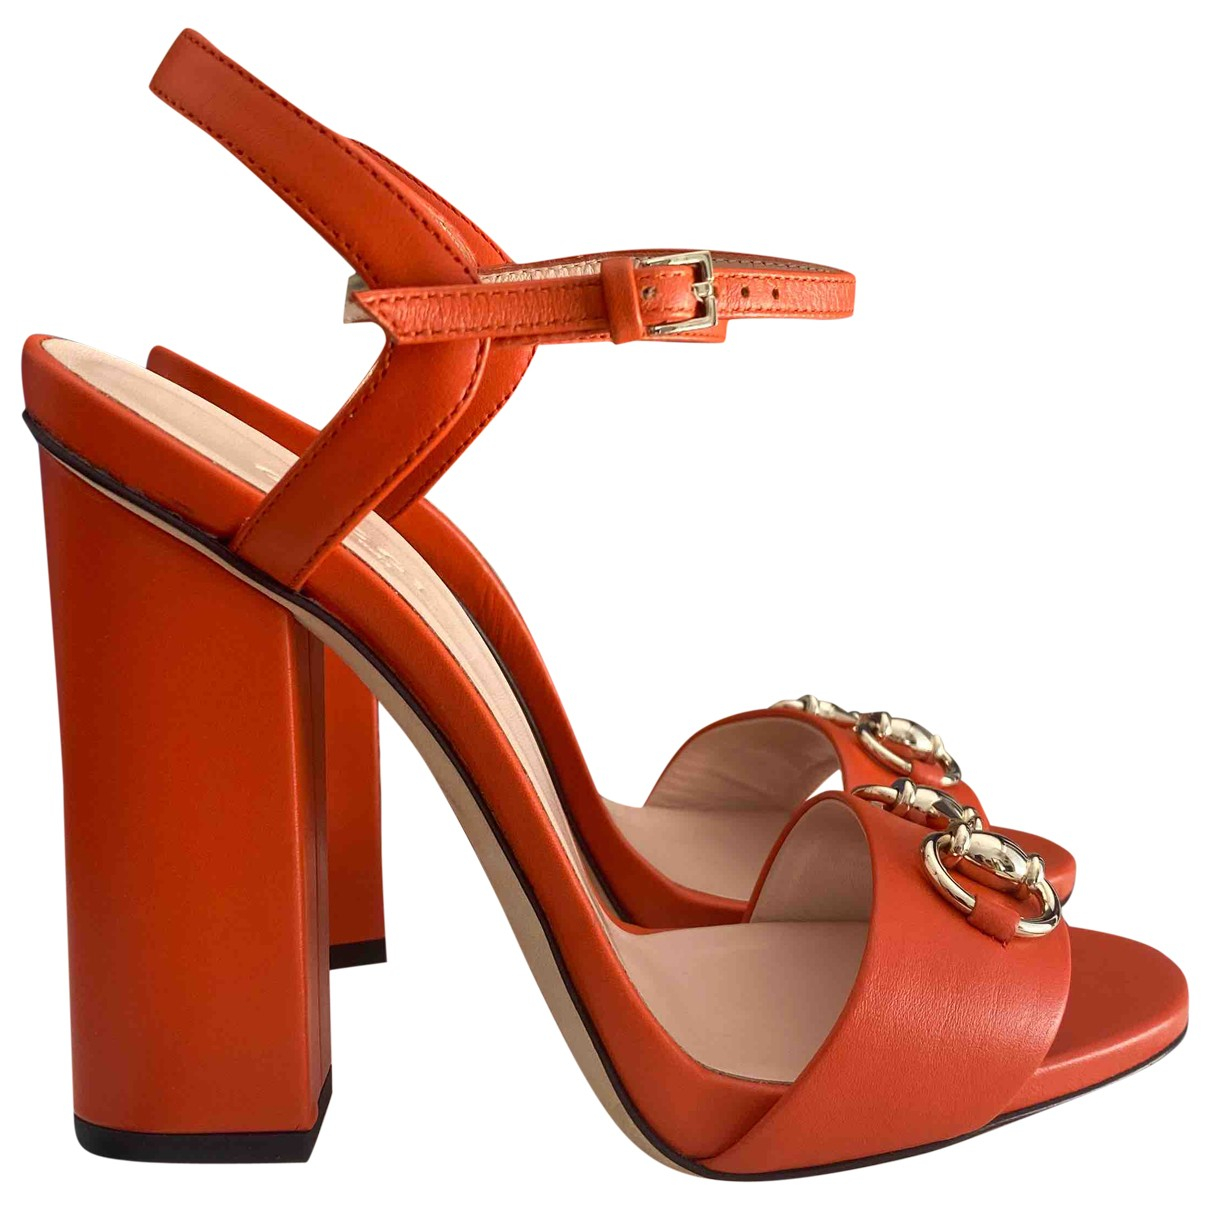 Gucci Double G Orange Leather Sandals for Women 36.5 EU